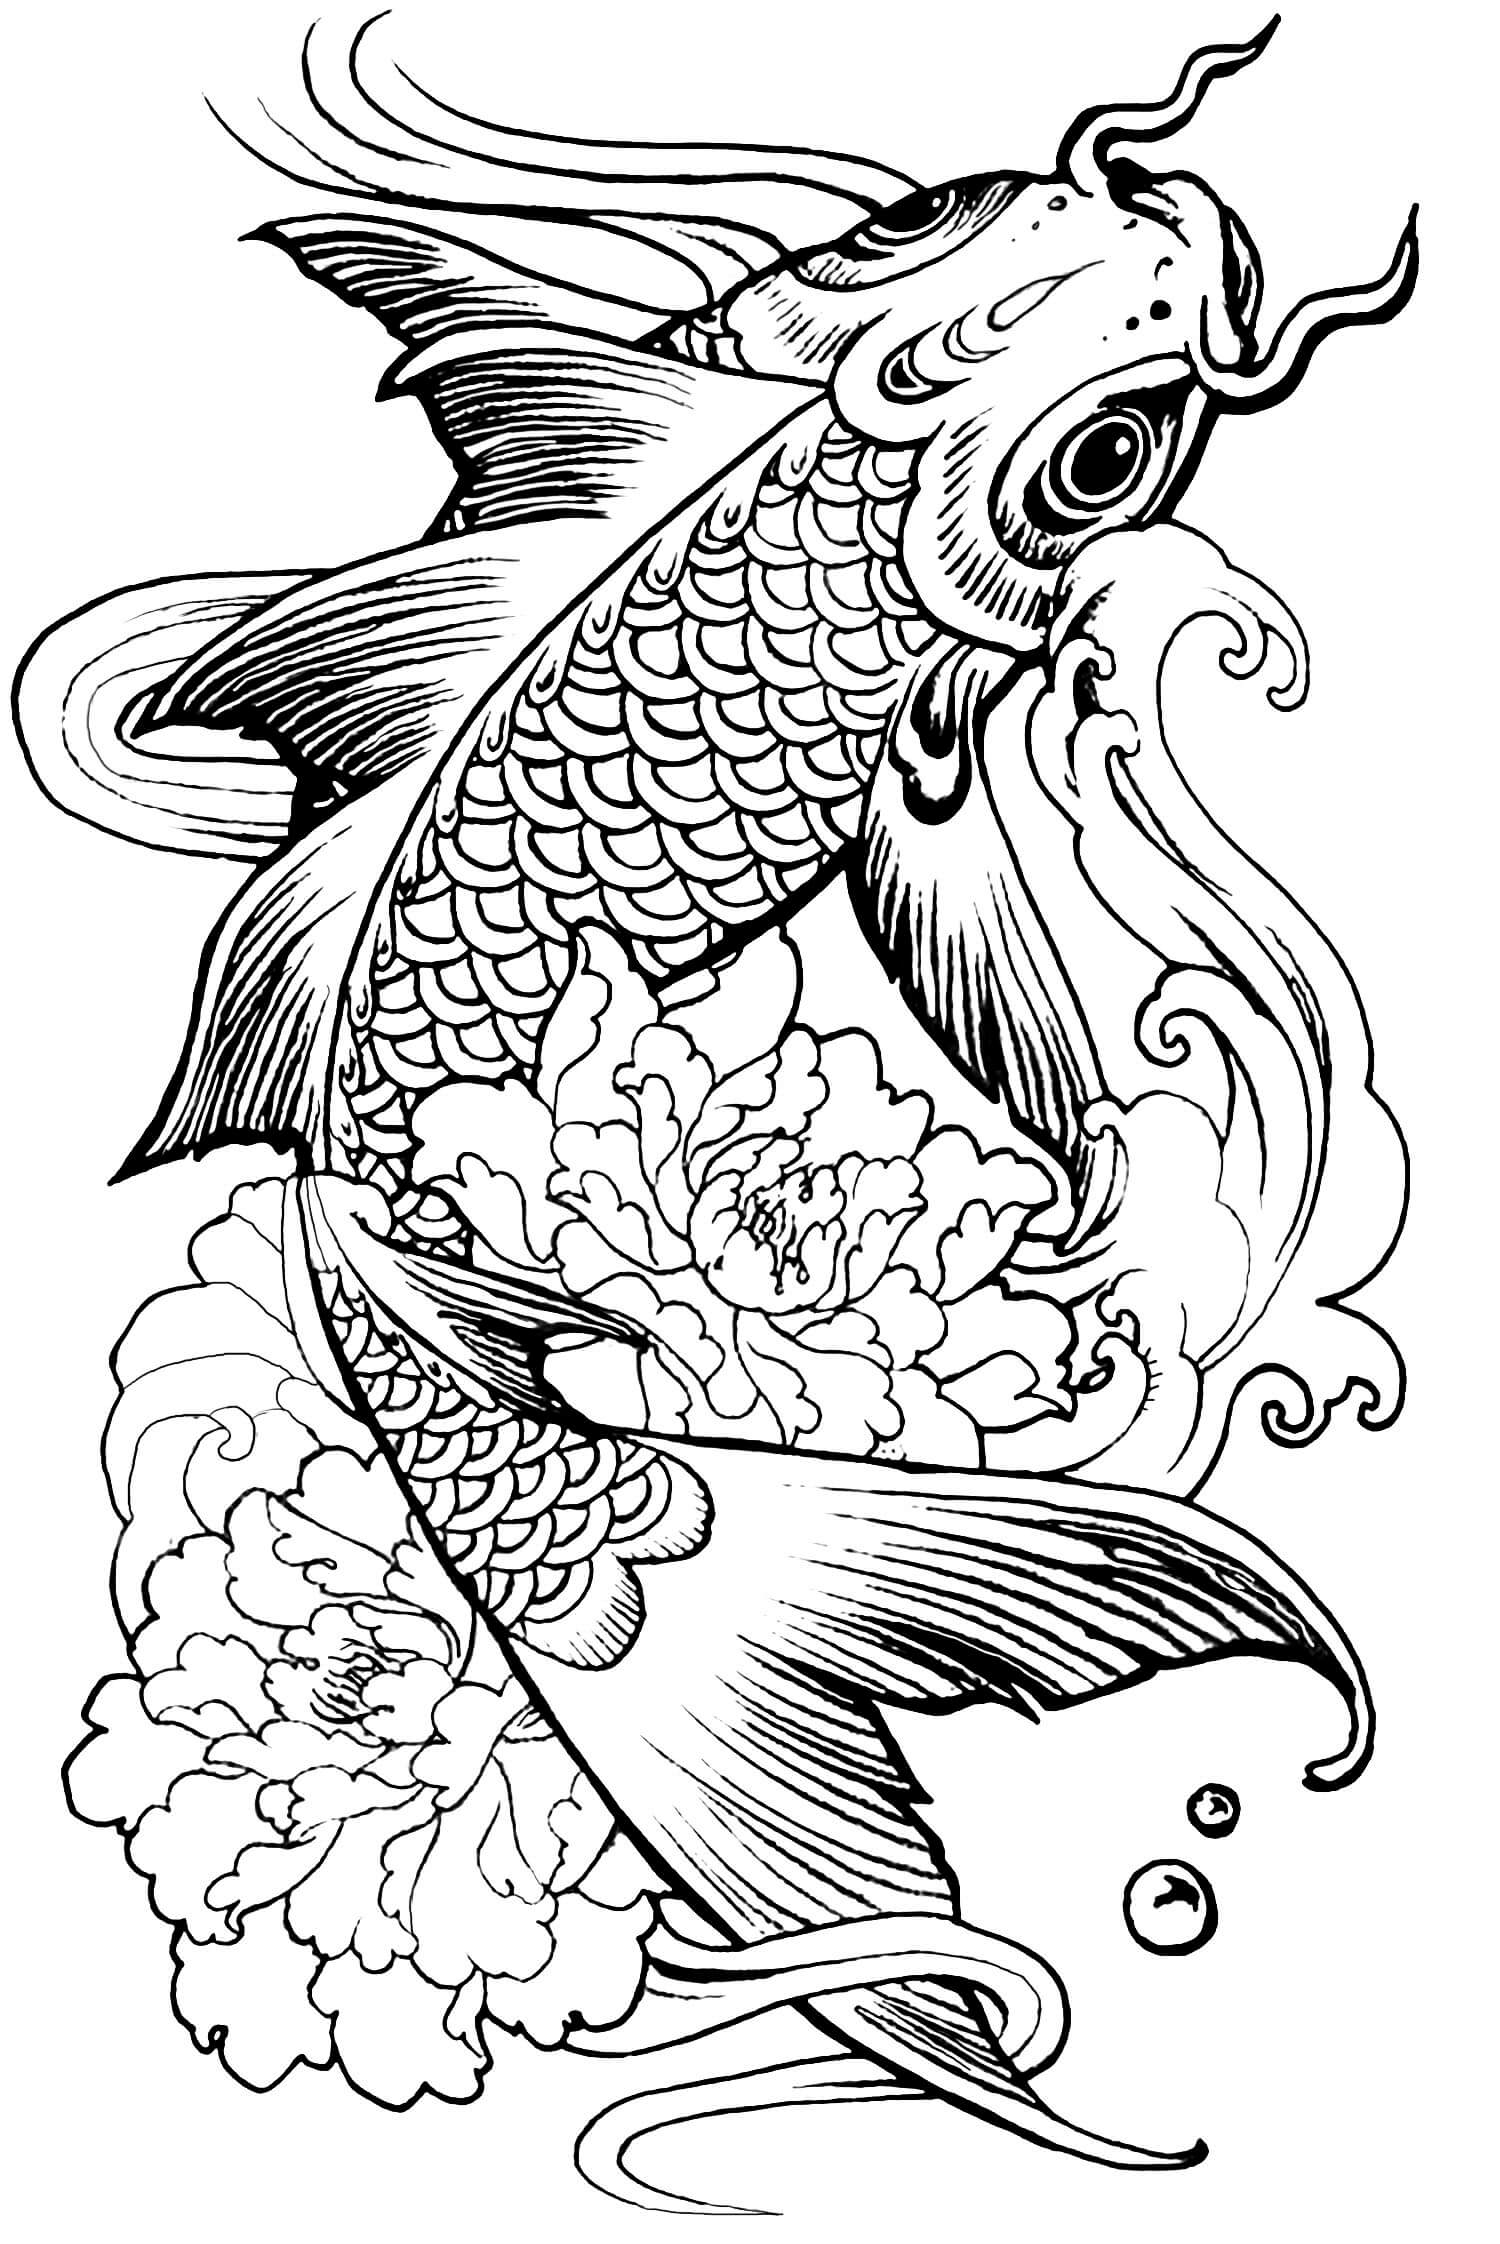 coloring the animal squirrel coloring pages coloringpages1001com coloring the animal